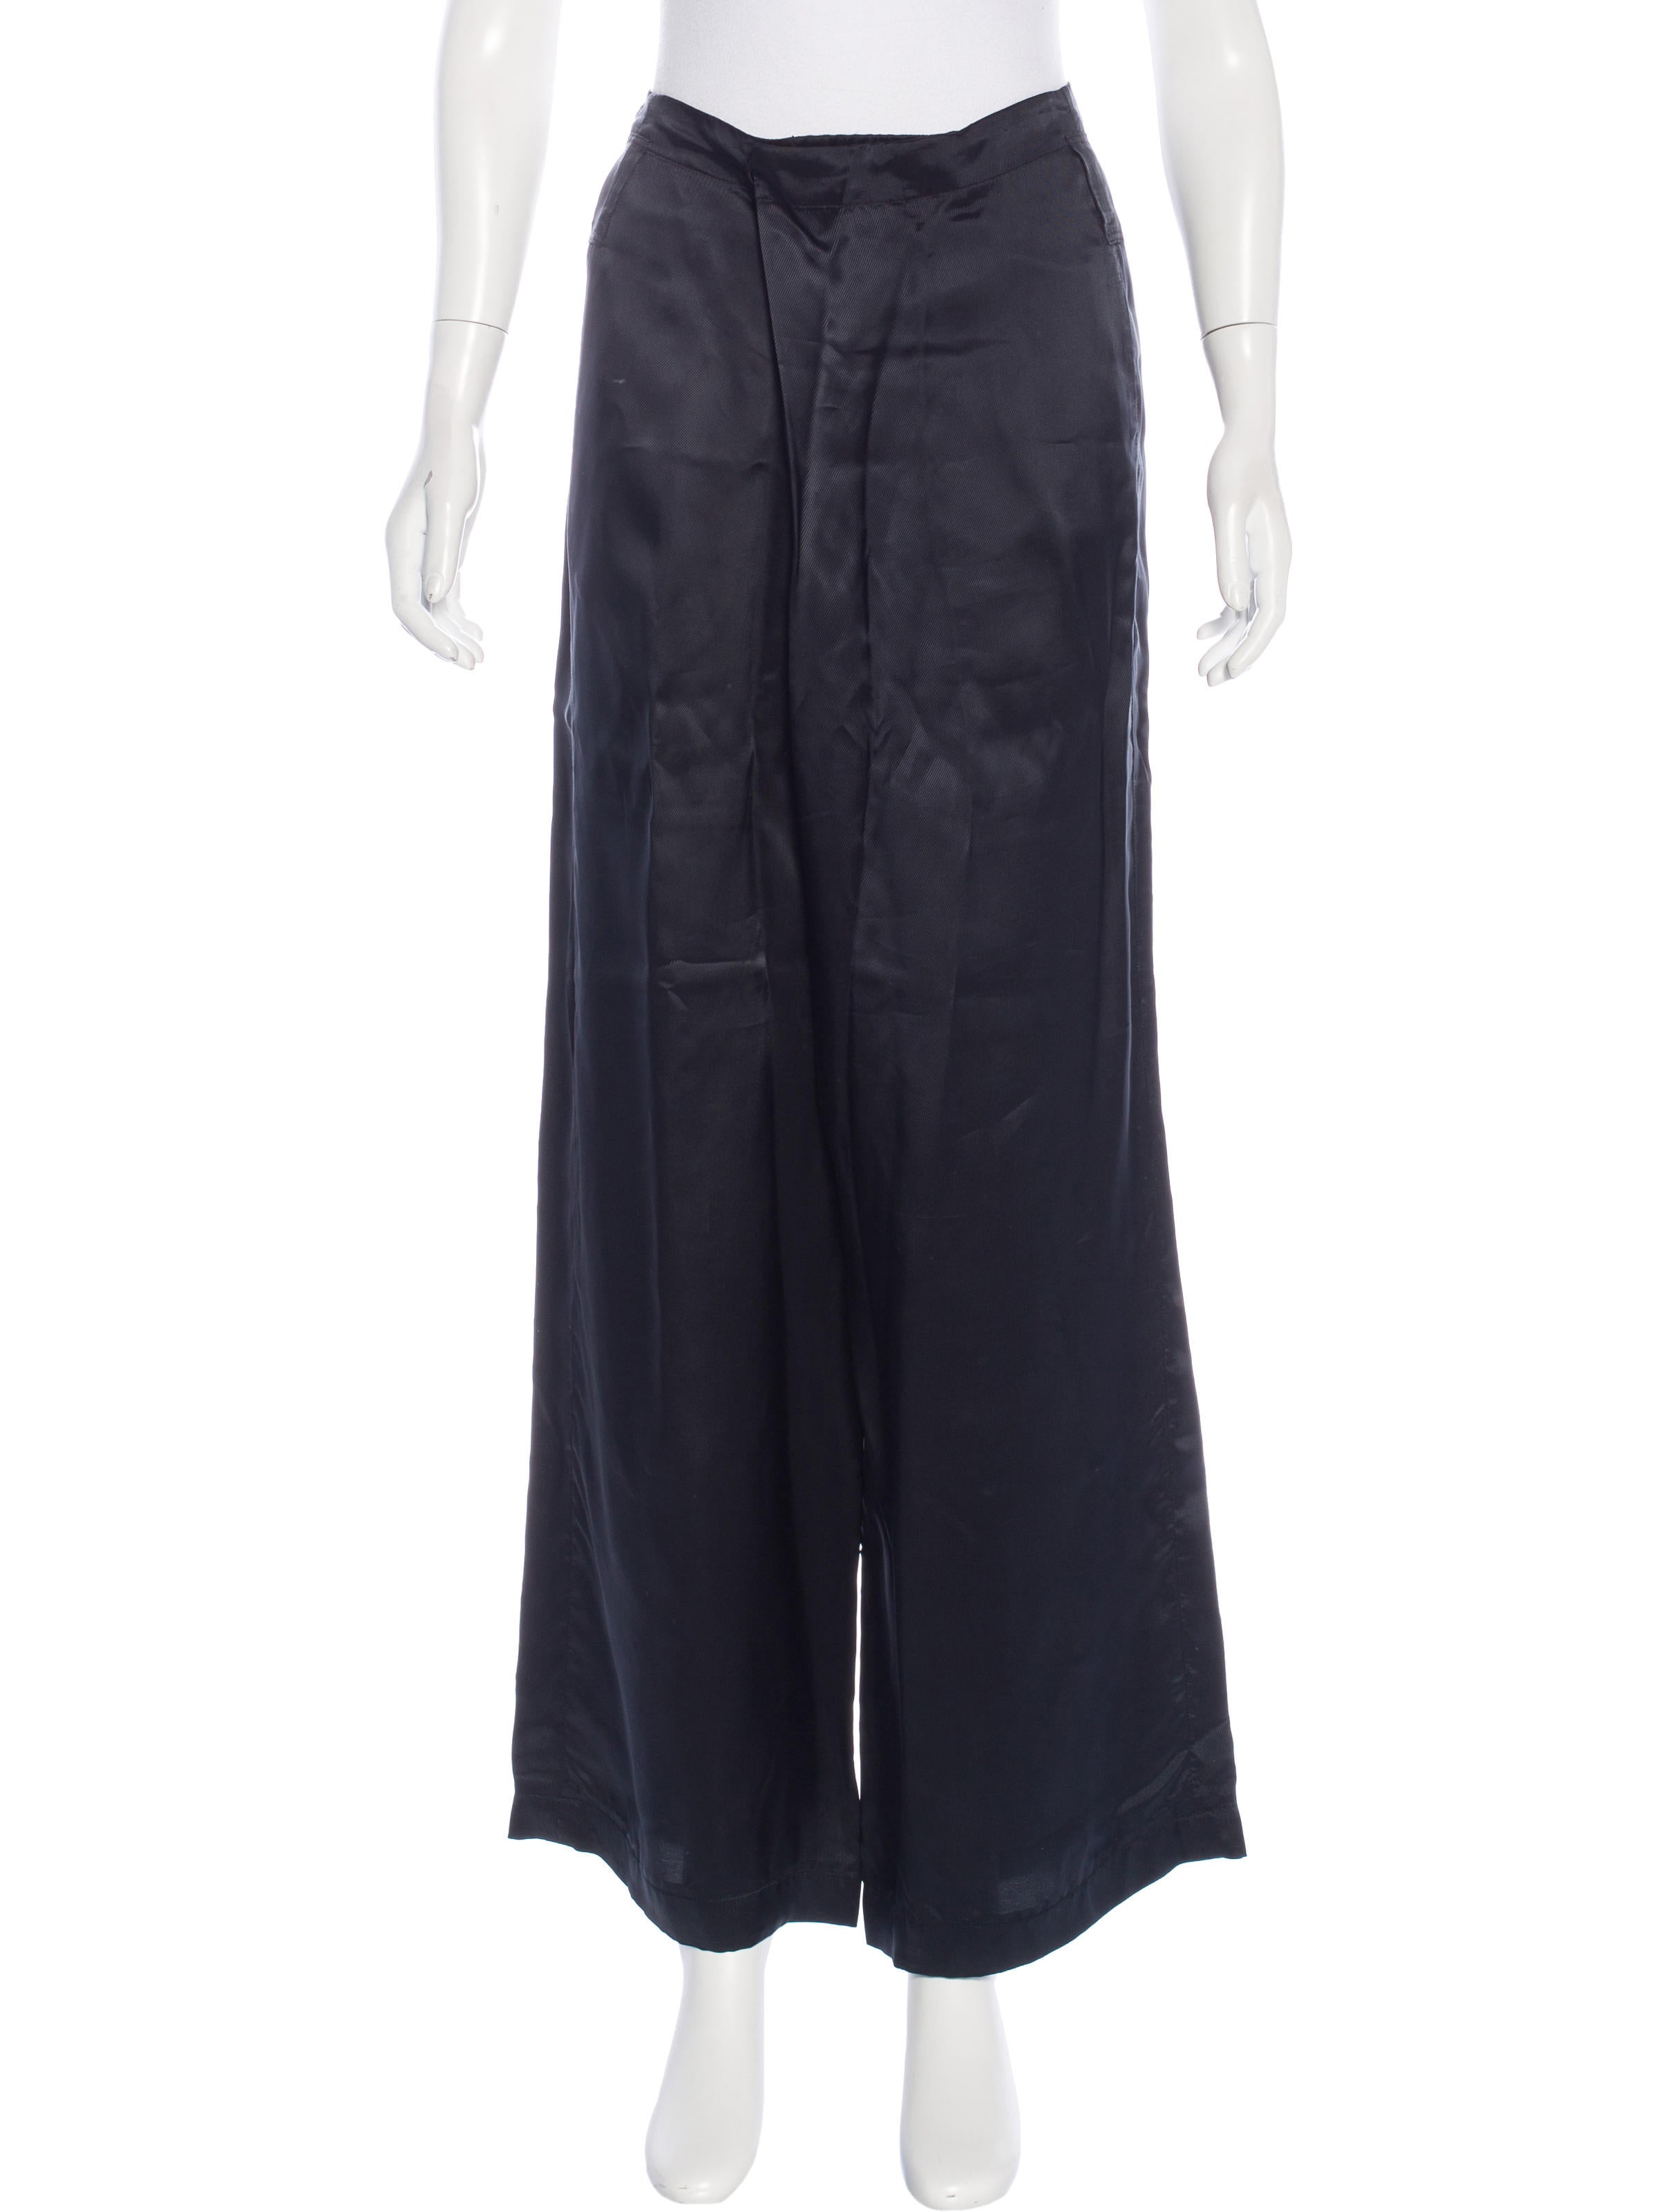 Shop womens palazzo pants cheap sale online, you can buy plus size palazzo pants, black palazzo pants, high waisted palazzo pants and printed palazzo pants for women at wholesale prices on techclux.gq FREE shipping available worldwide.